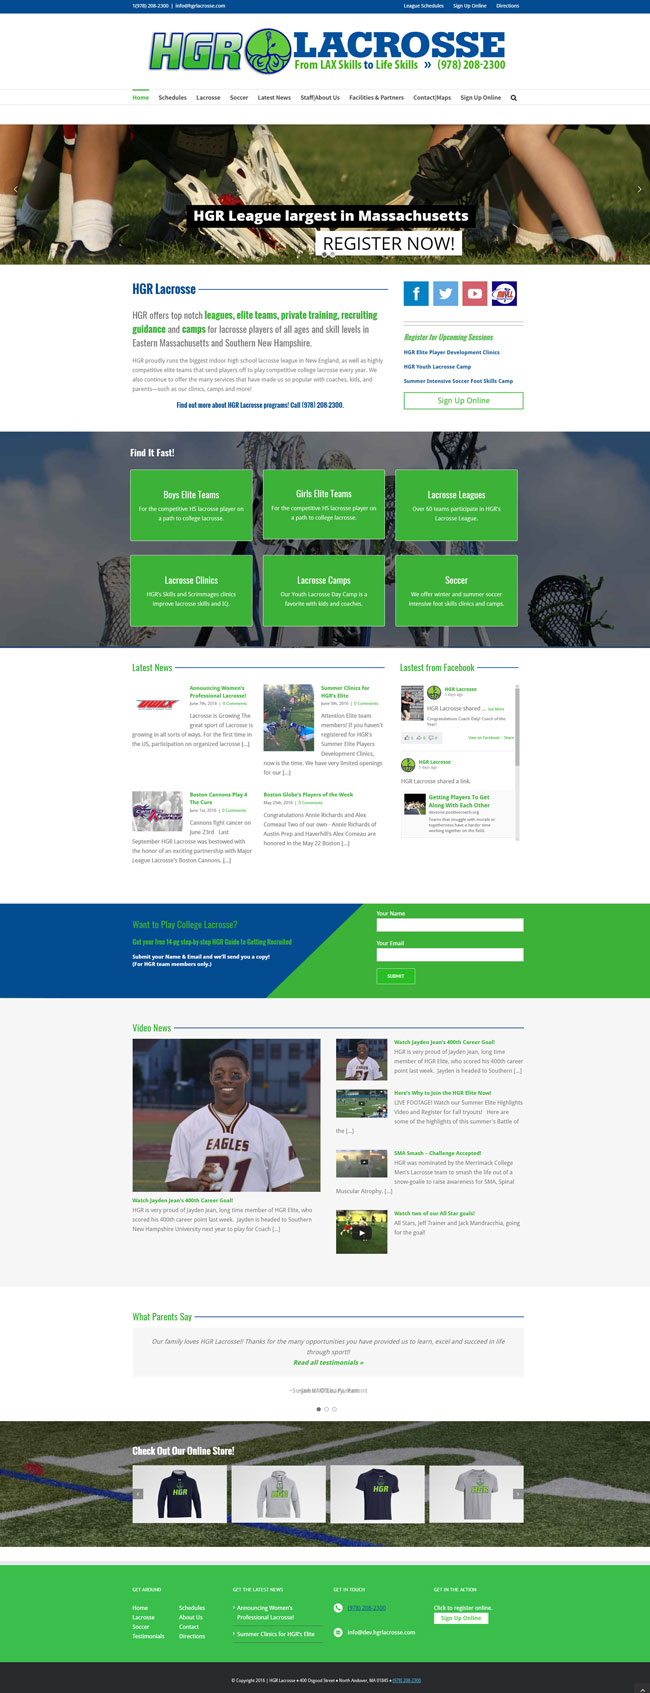 HGR Lacrosse Website